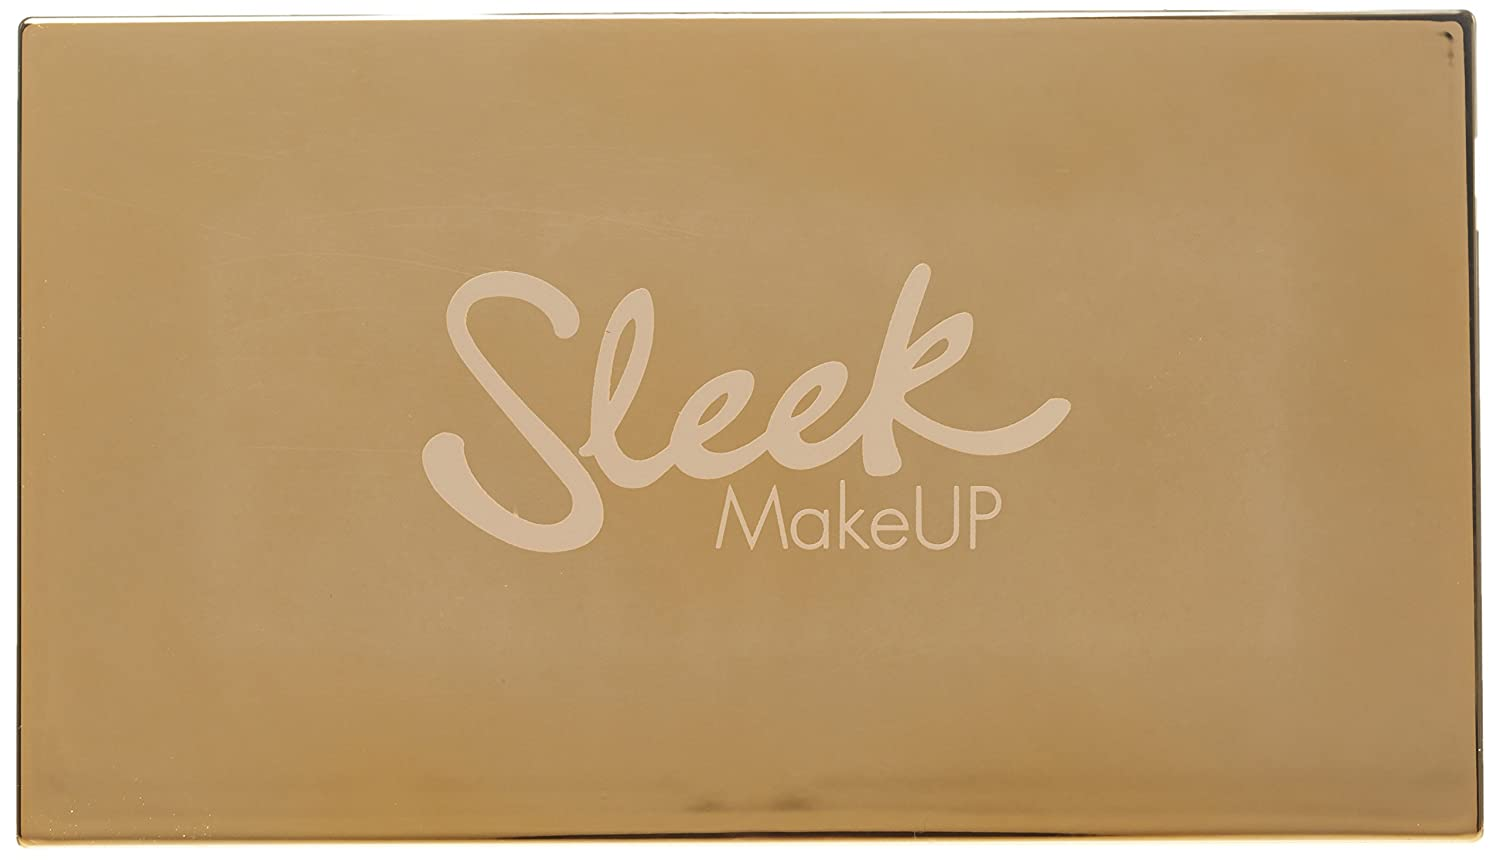 Sleek MakeUP Highlighting Palette Solstice, 9 g Sleek International 96121887